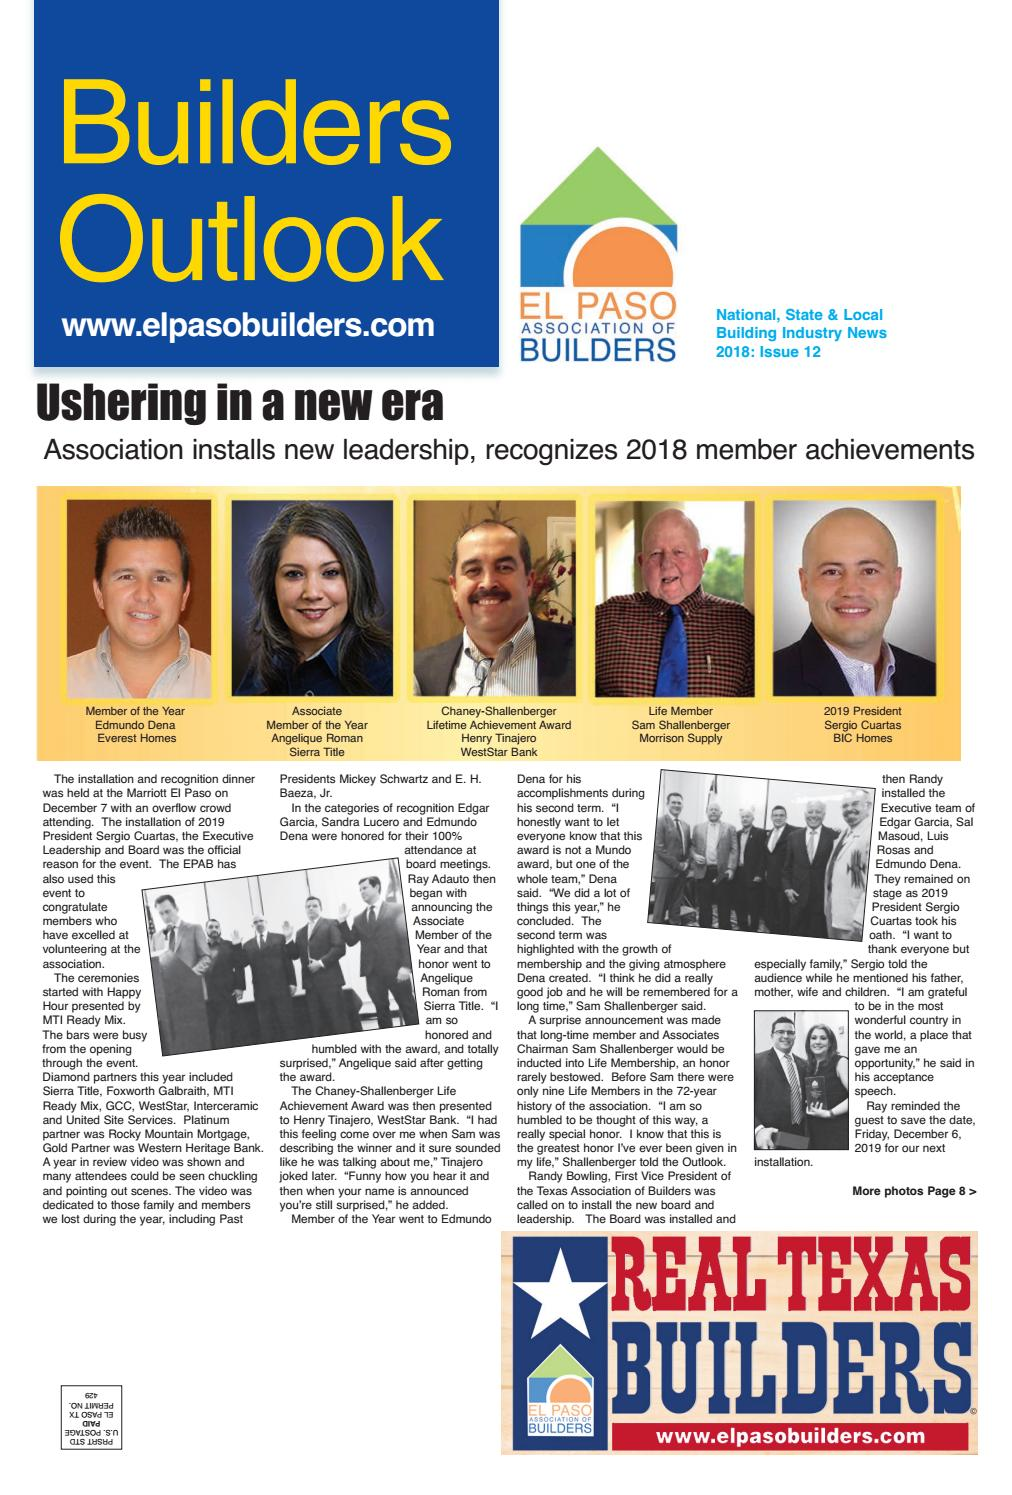 Builders Outlook 2018 Issue 12 by Ted Escobedo - issuu